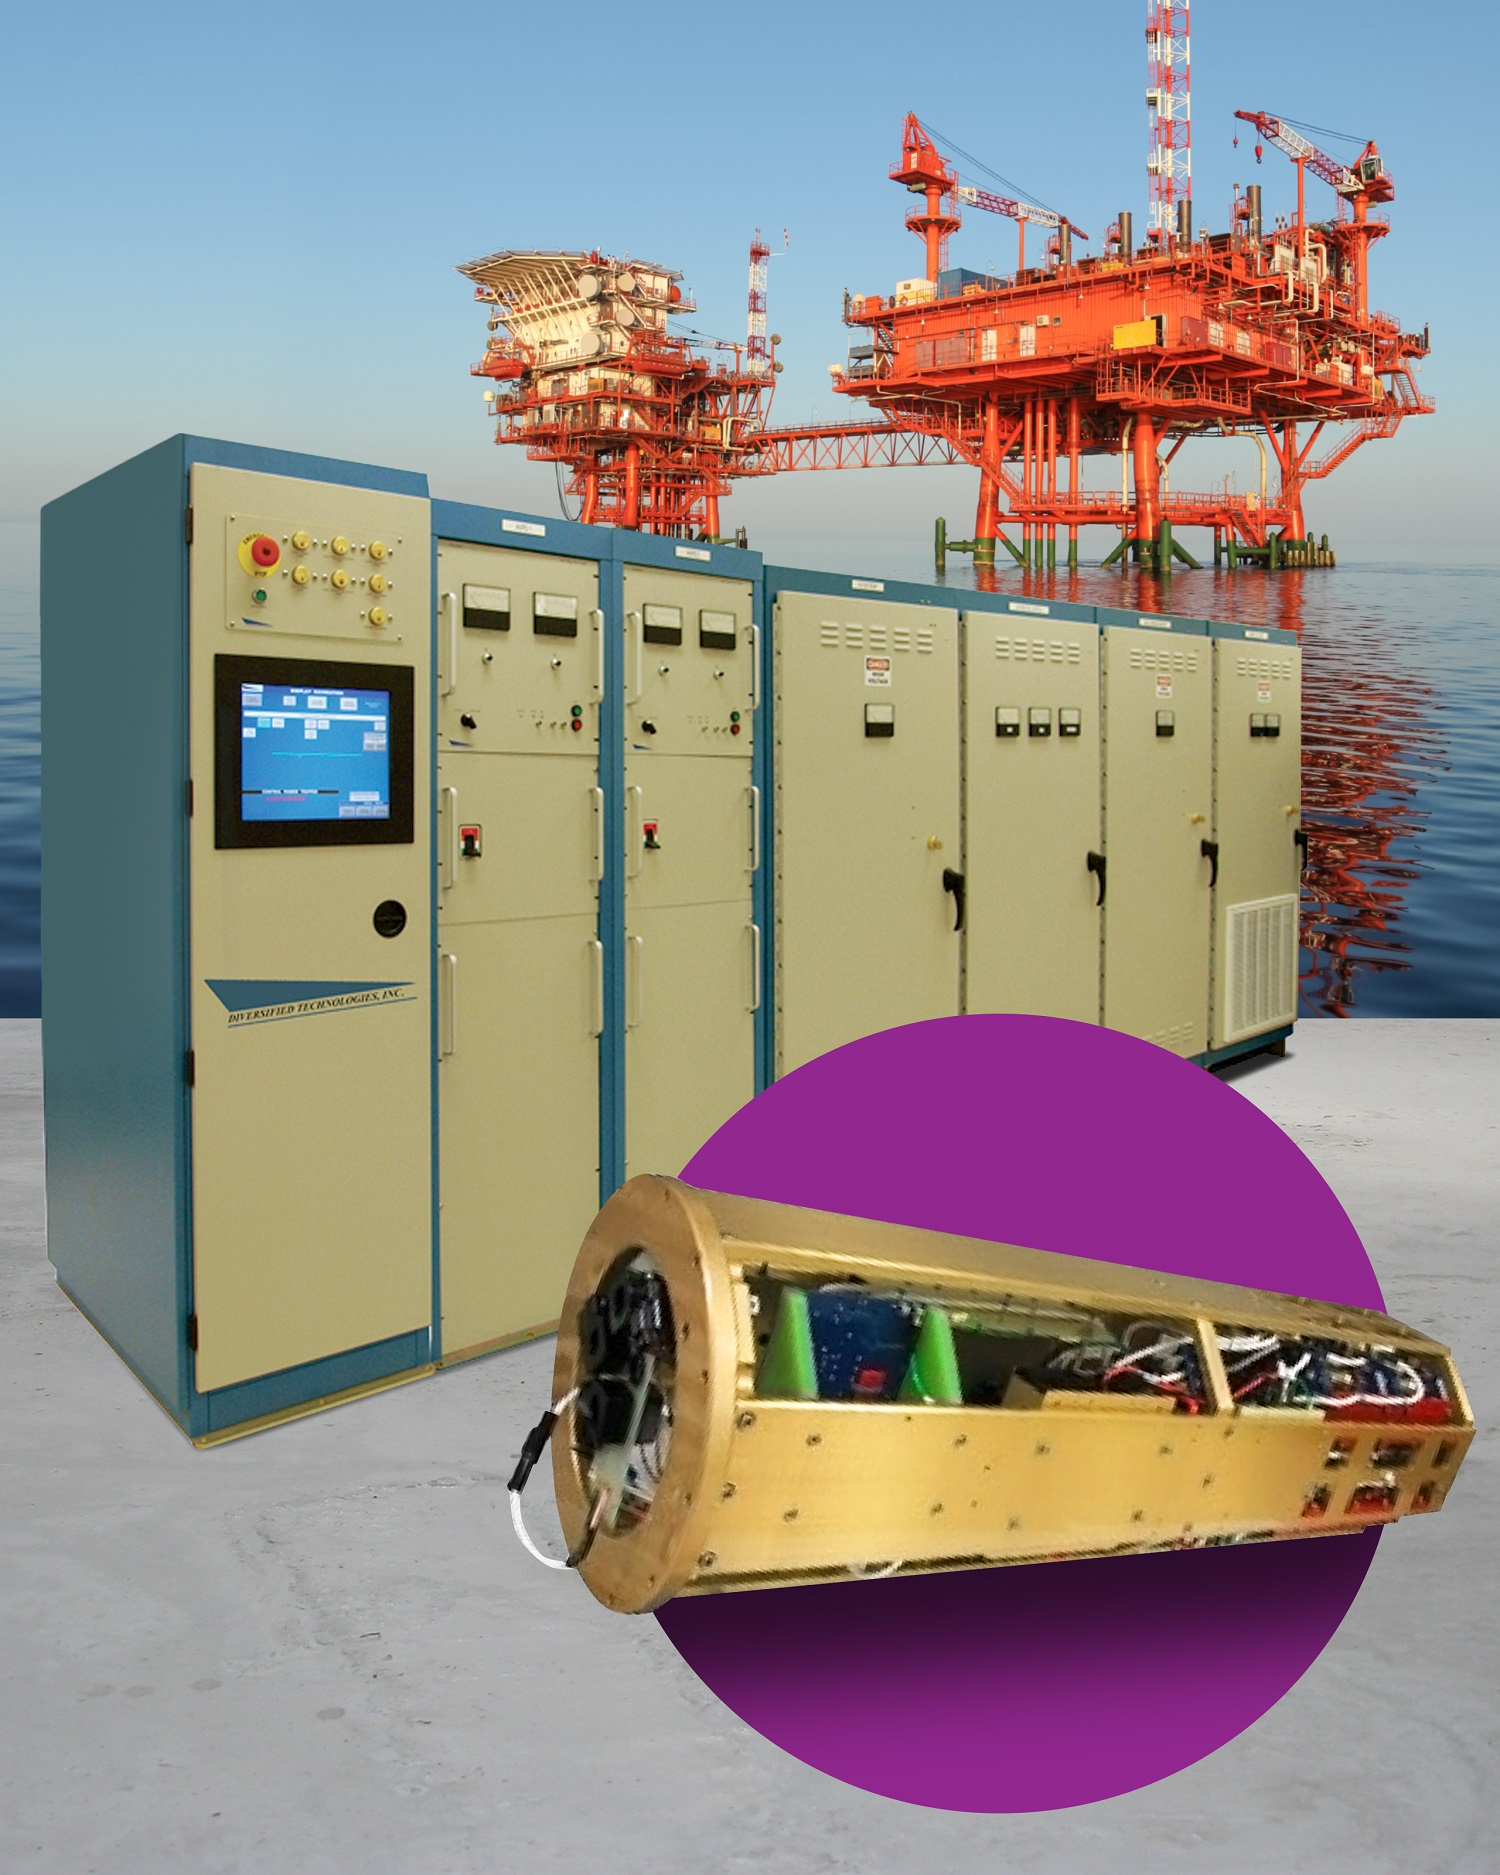 SUBSEA ELECTRIC POWER CONVERTER ELIMINATES MILES OF HYDRAULIC CABLES